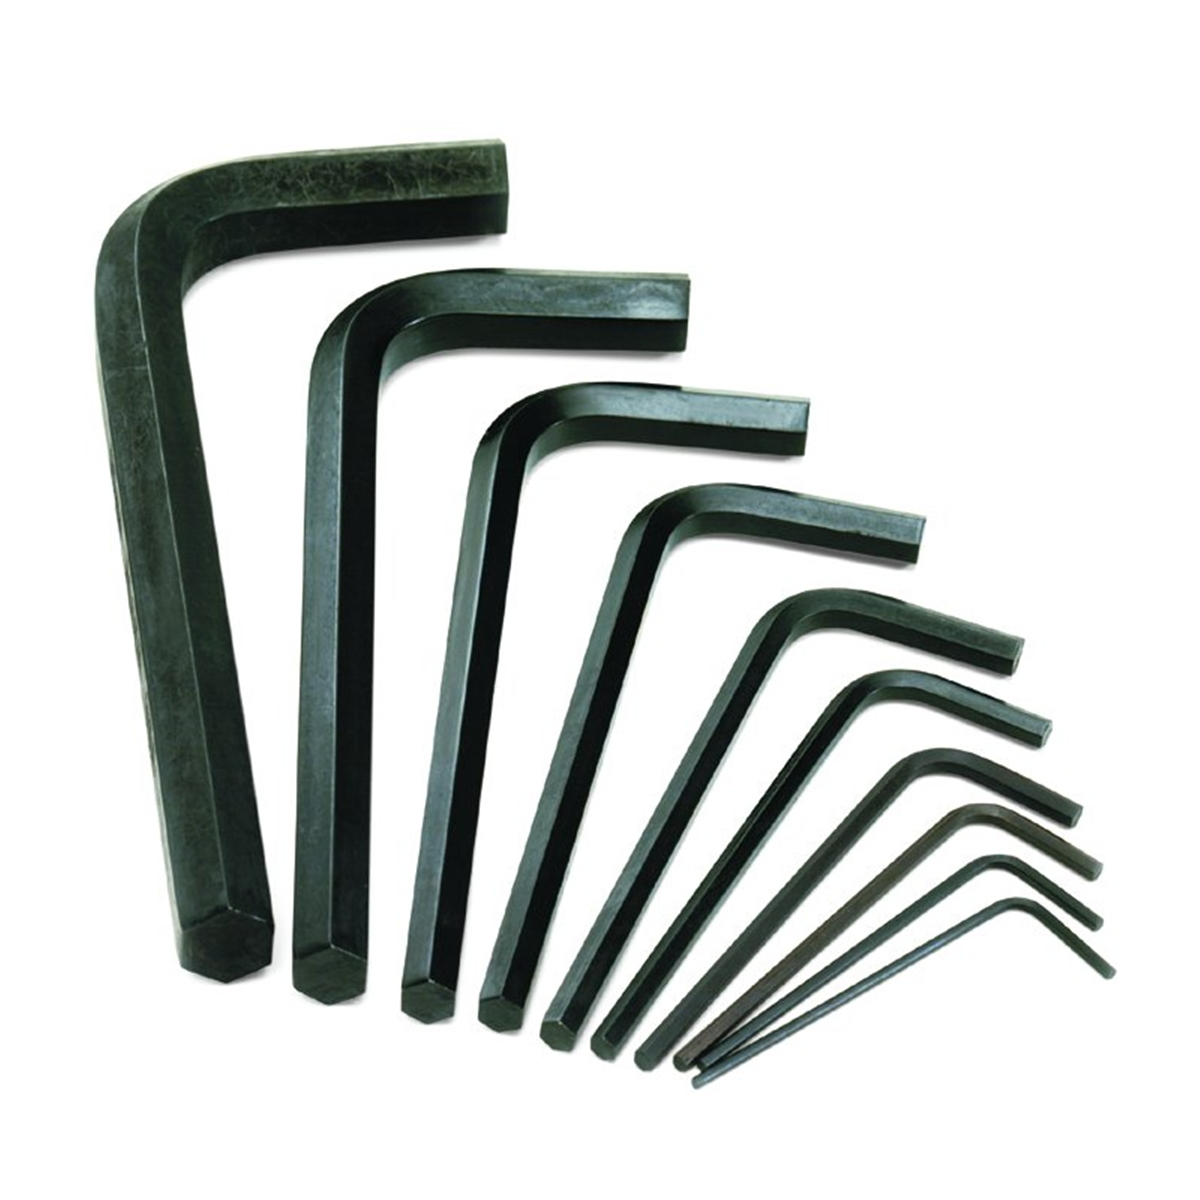 10Pc. Metric Hex Key Set